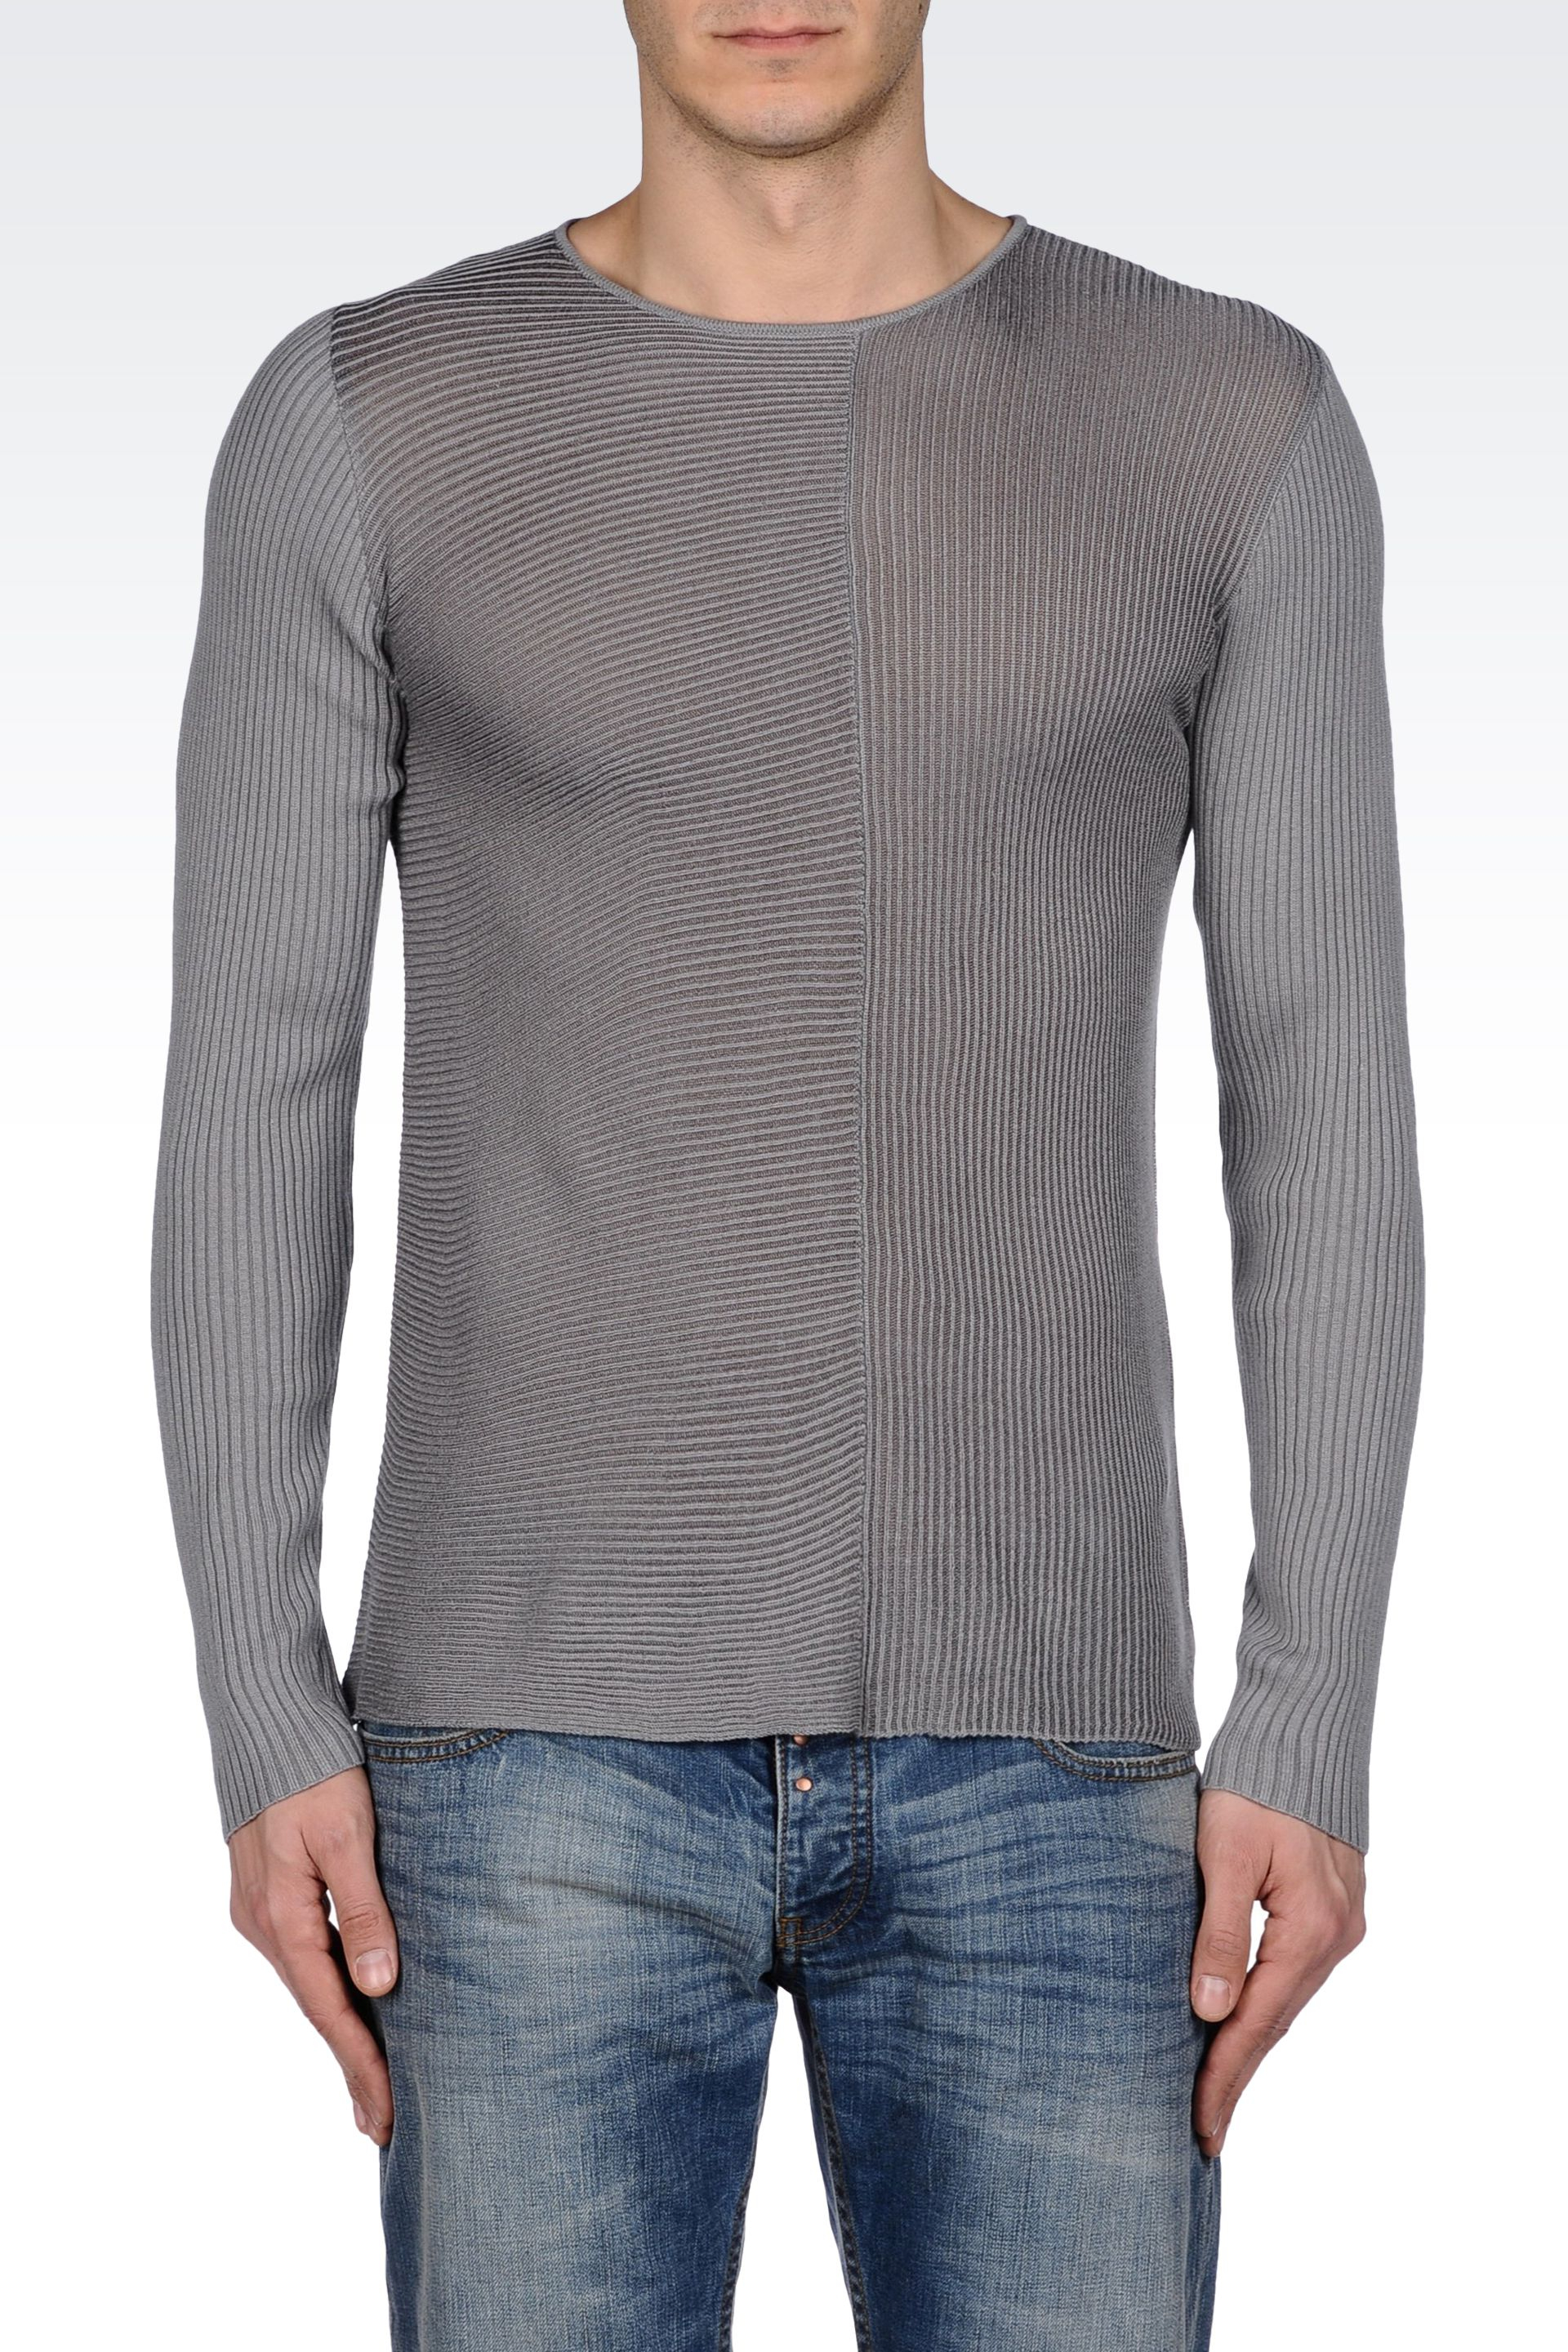 emporio armani sweater in ribbed cotton viscose in gray for men lyst. Black Bedroom Furniture Sets. Home Design Ideas